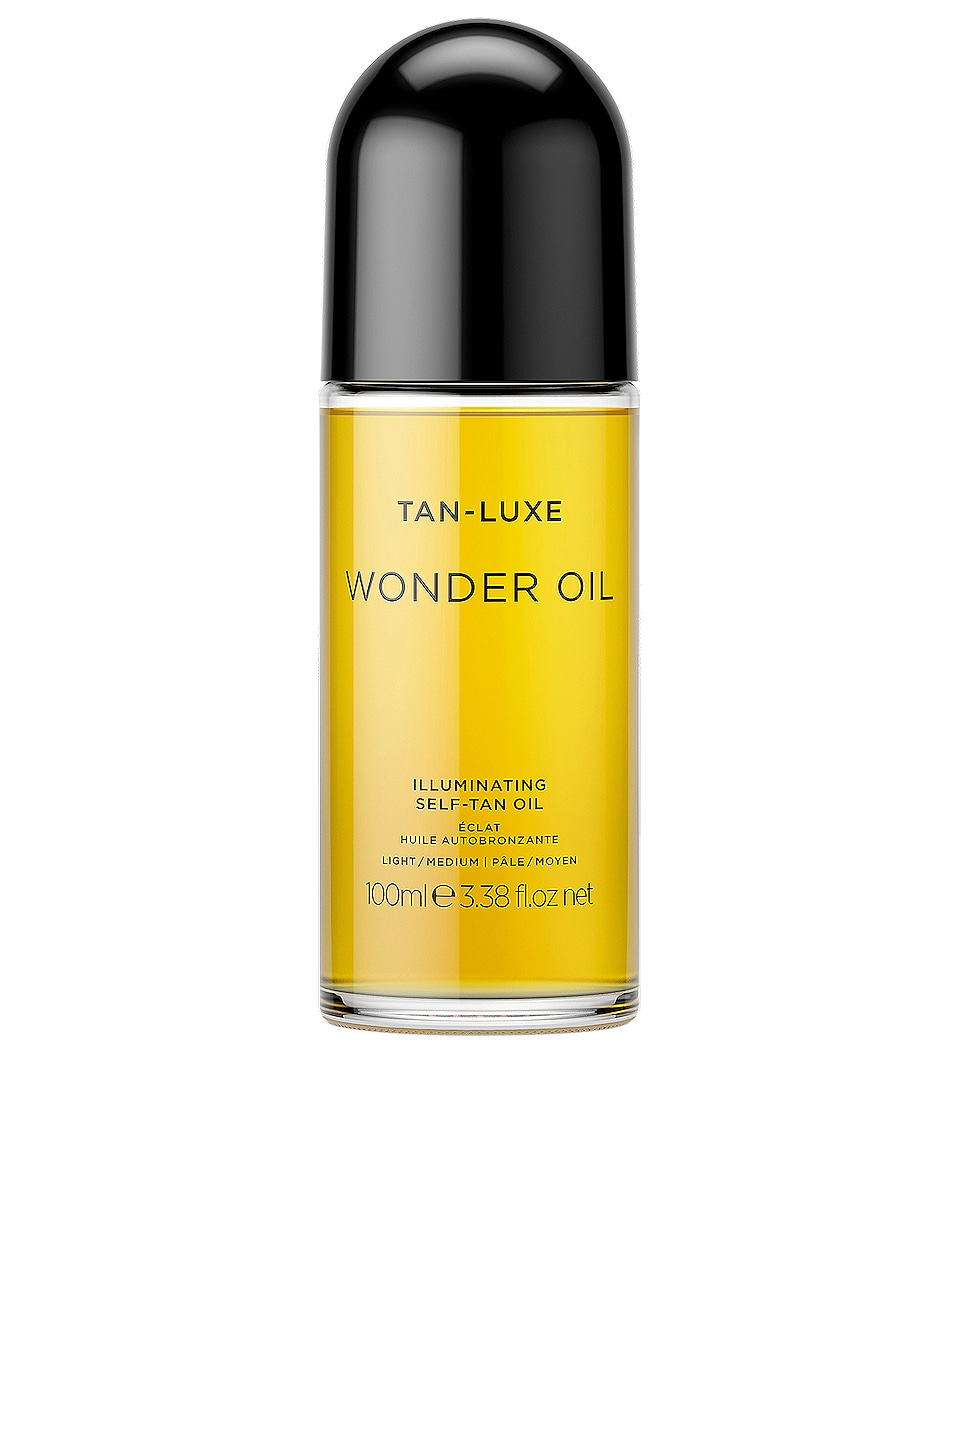 Tan Luxe Wonder Oil Illuminating Self-Tan Oil - Light/Medium